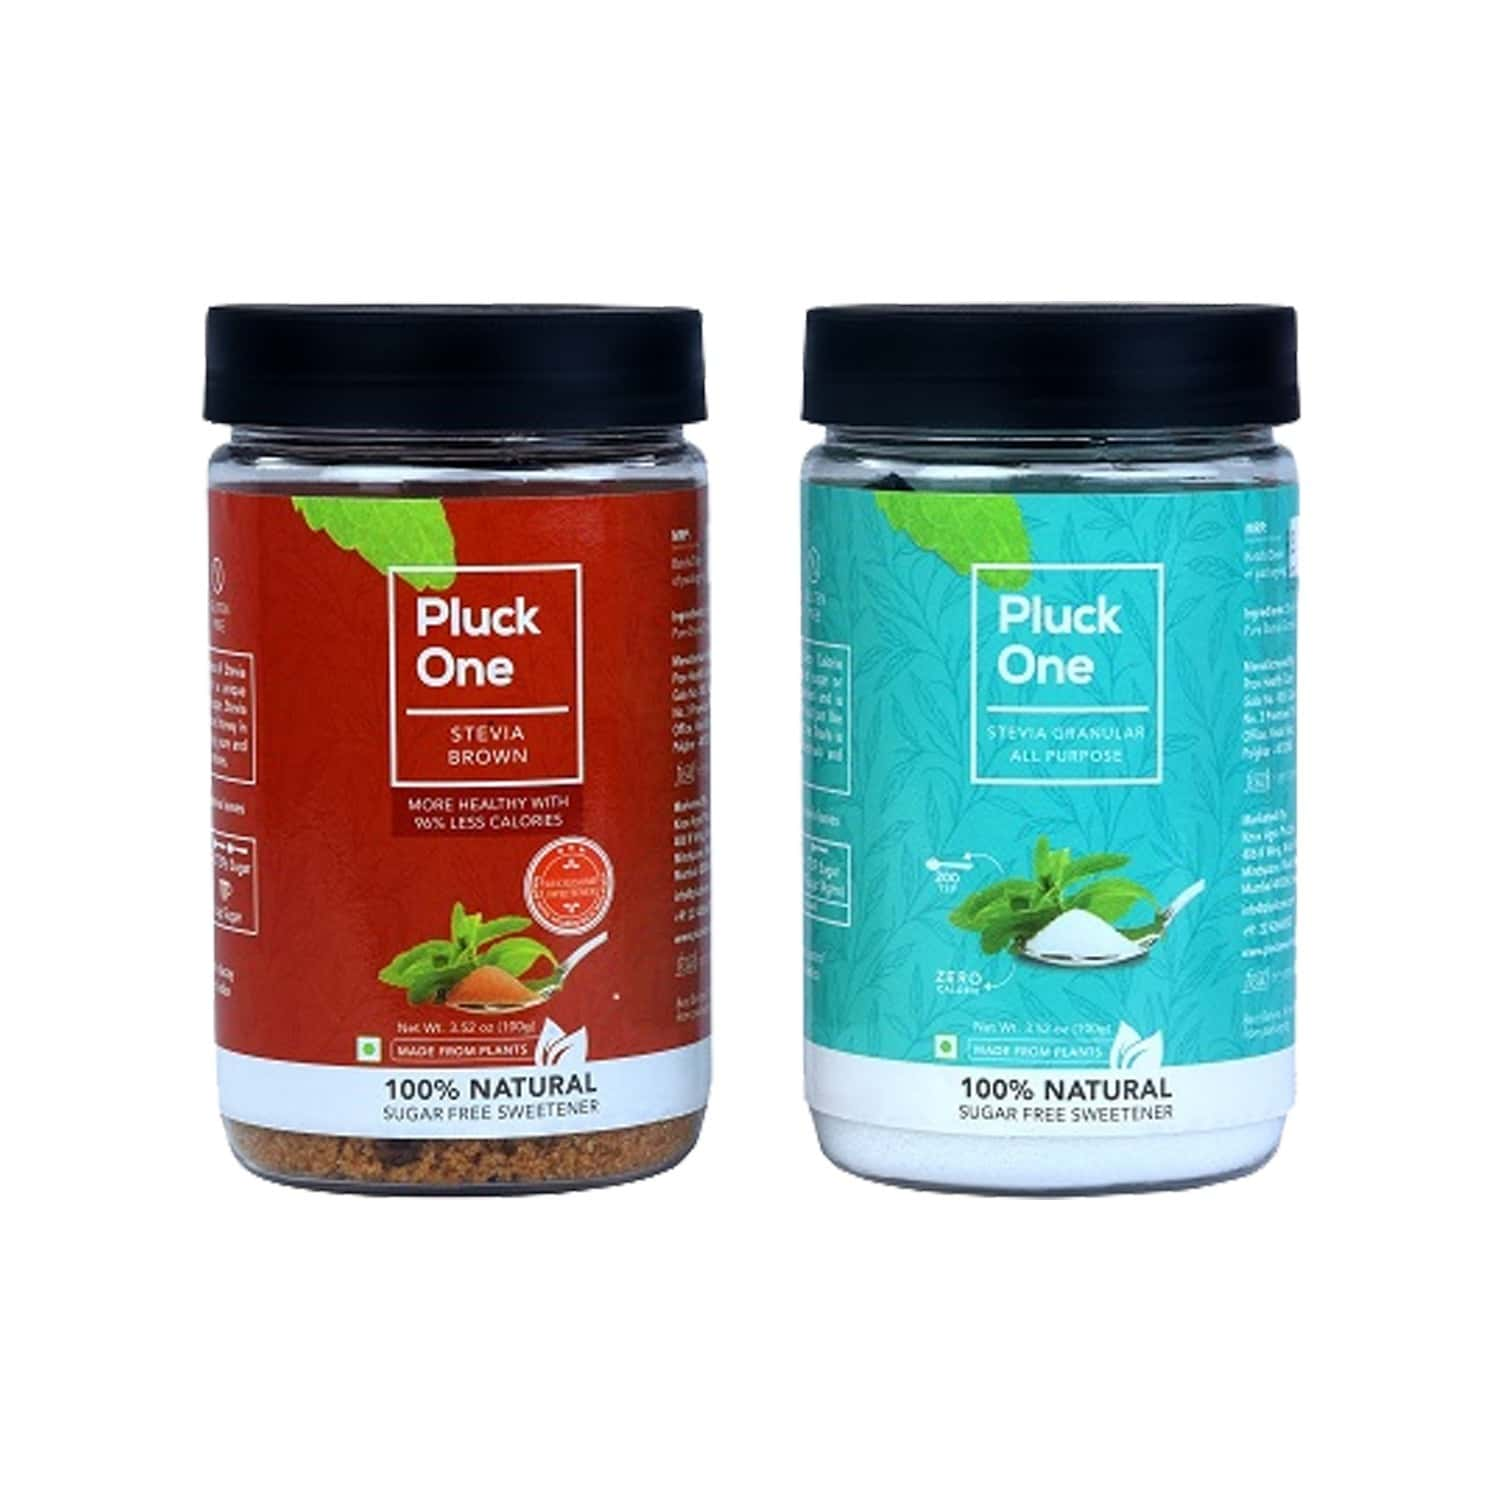 Pluck One Combo 16 - All Purpose Stevia + Stevia Brown - 200gms